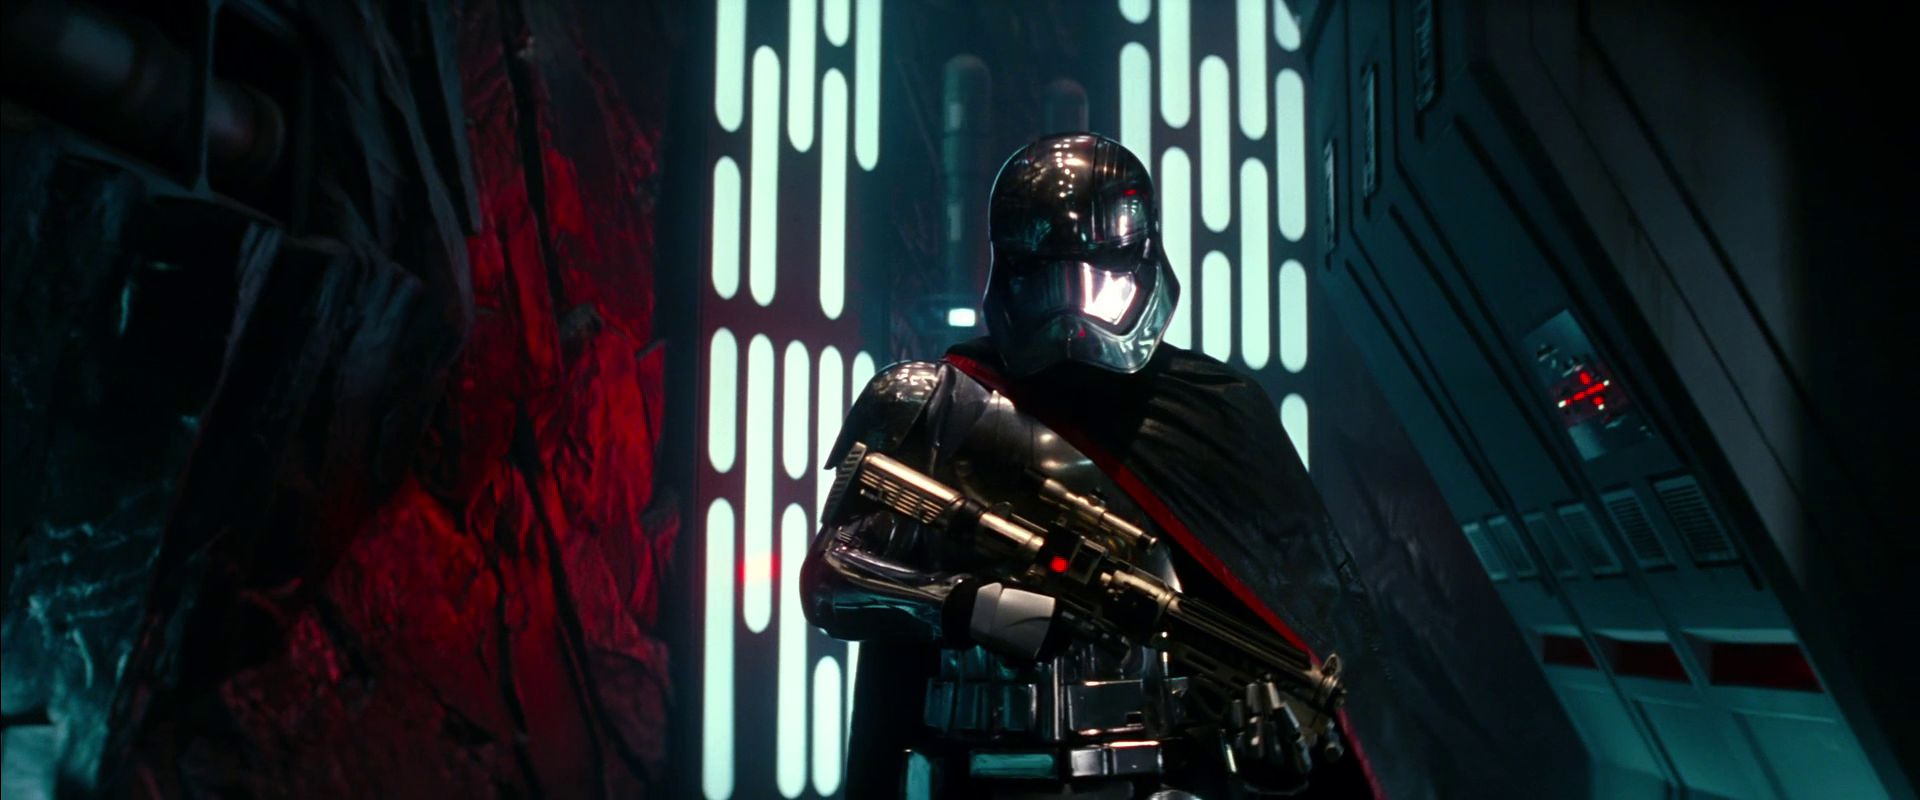 Star Wars: The Force Awakens - Captain Phasma